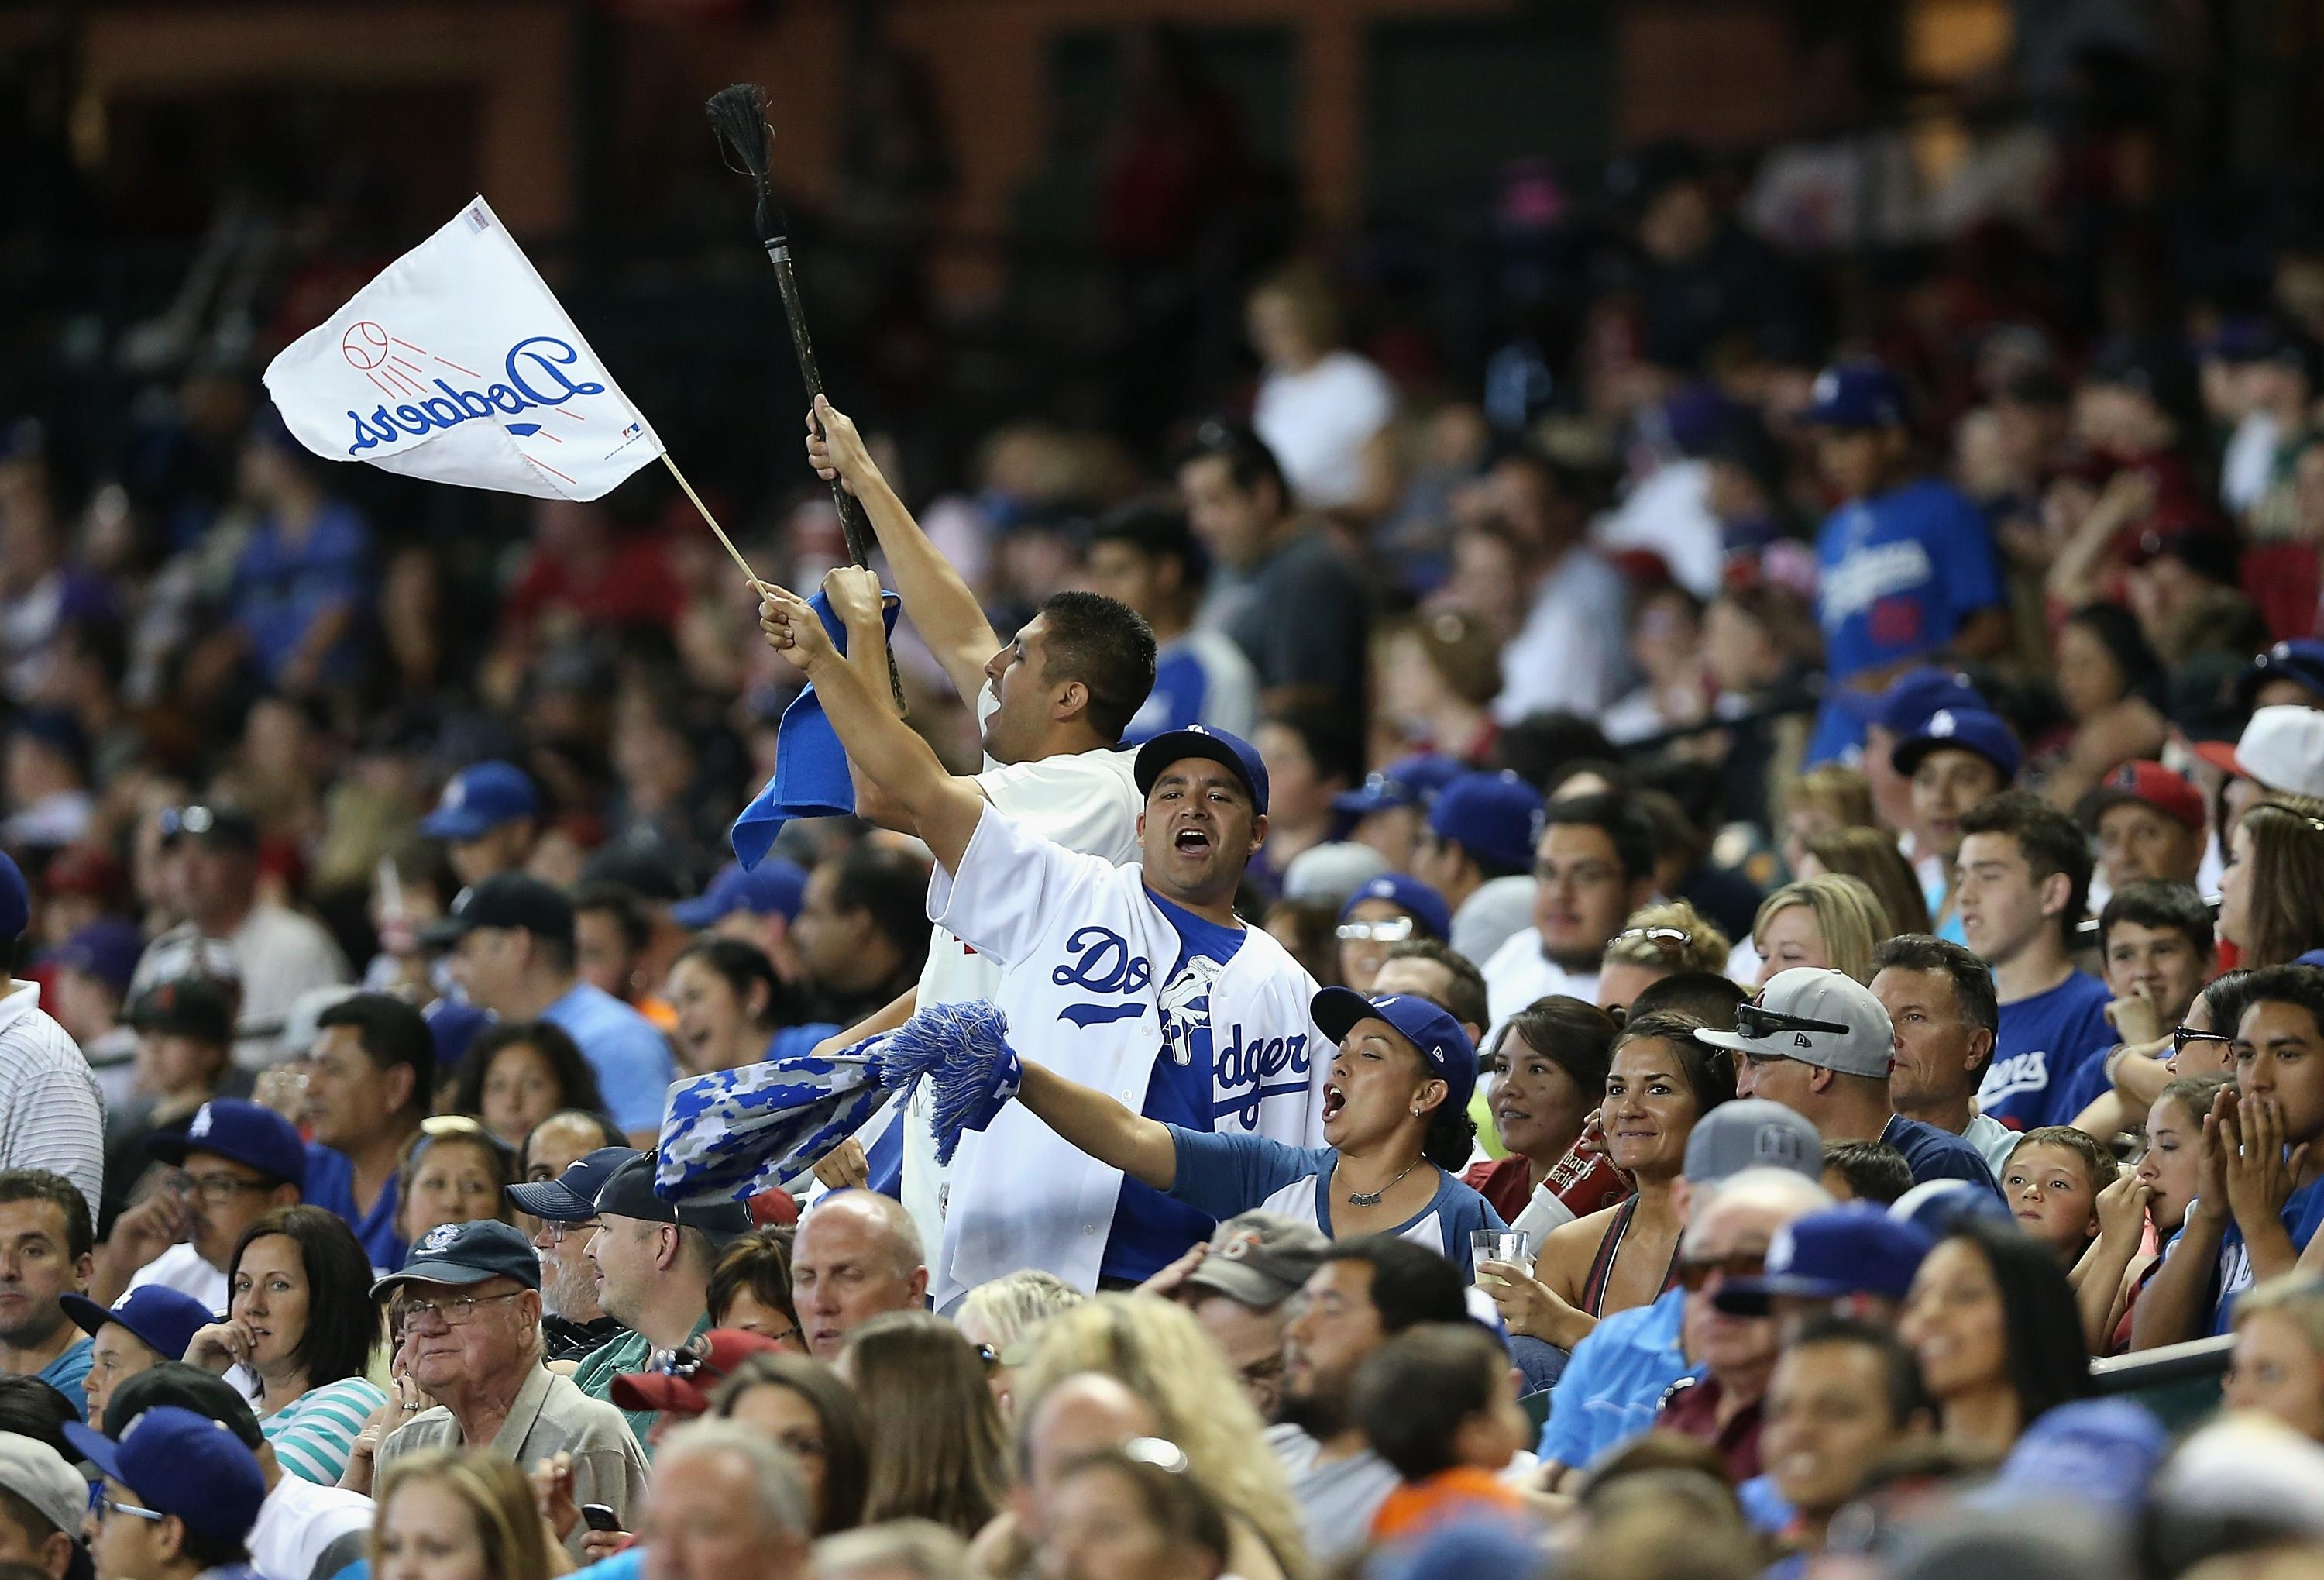 Time Warner Cable expected to lose $1 billion in messy Dodgers TV deal